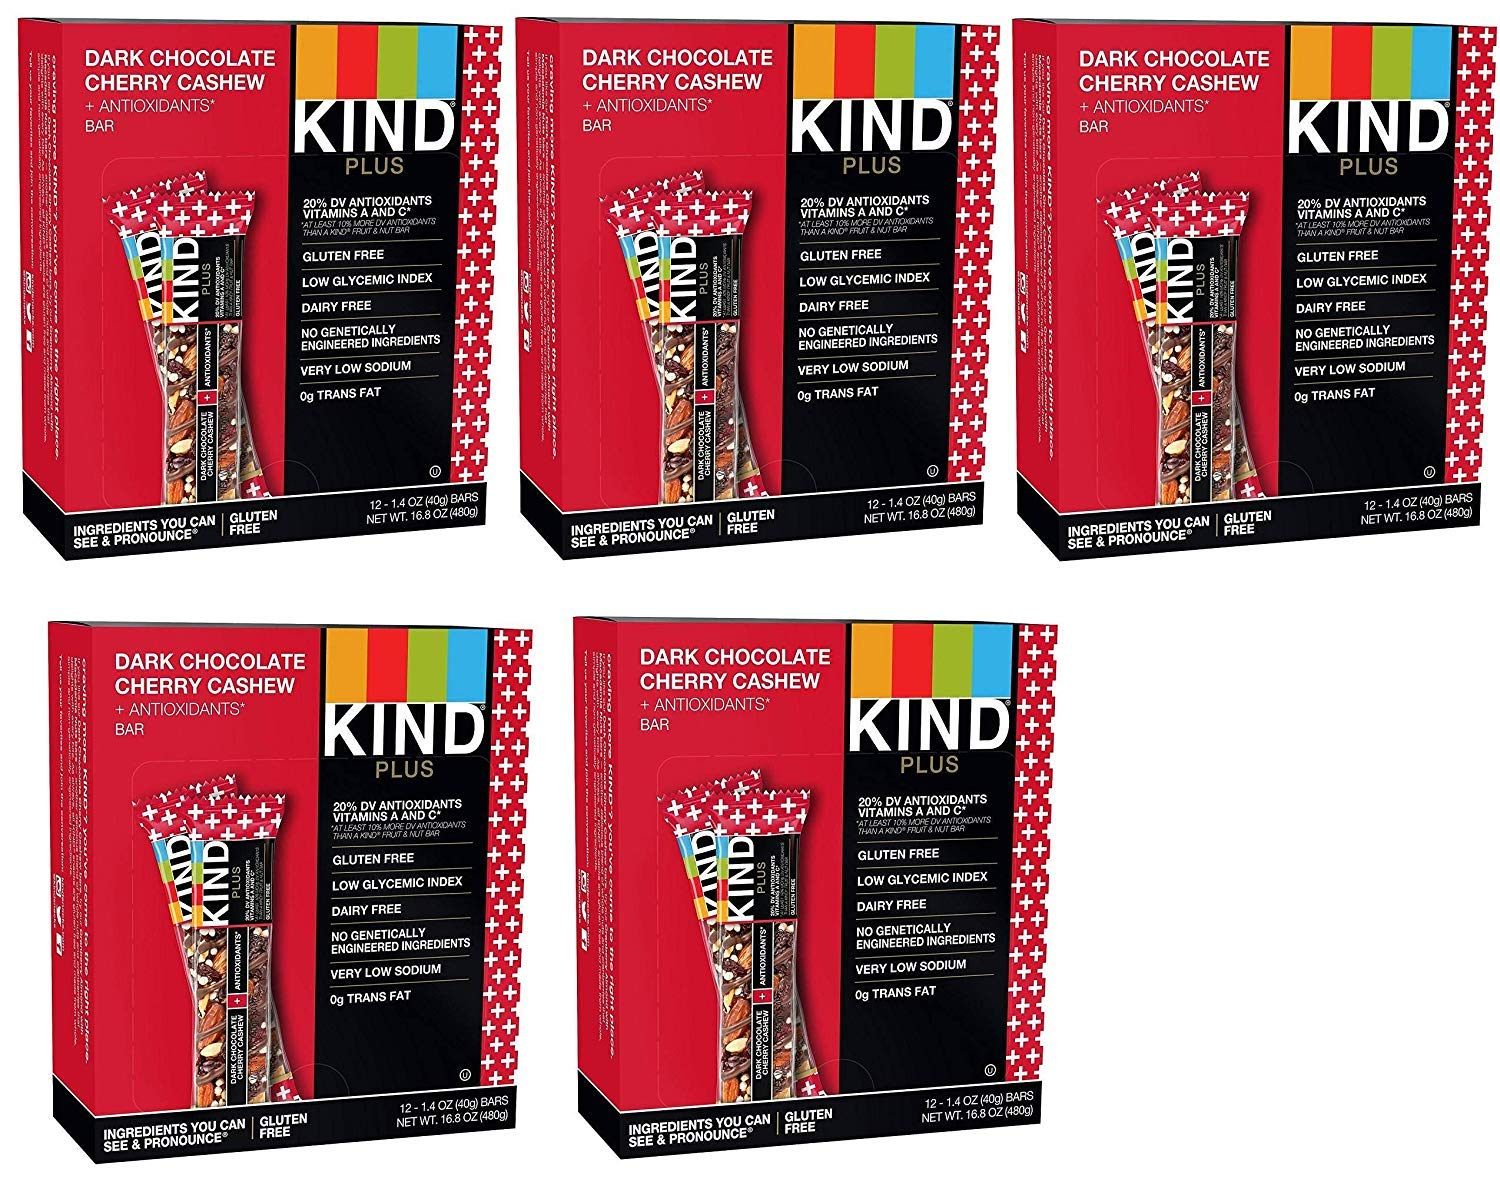 KIND Bars, Dark Chocolate Cherry Cashew + Antioxidants, Gluten Free, 1.4oz (60 Bars)